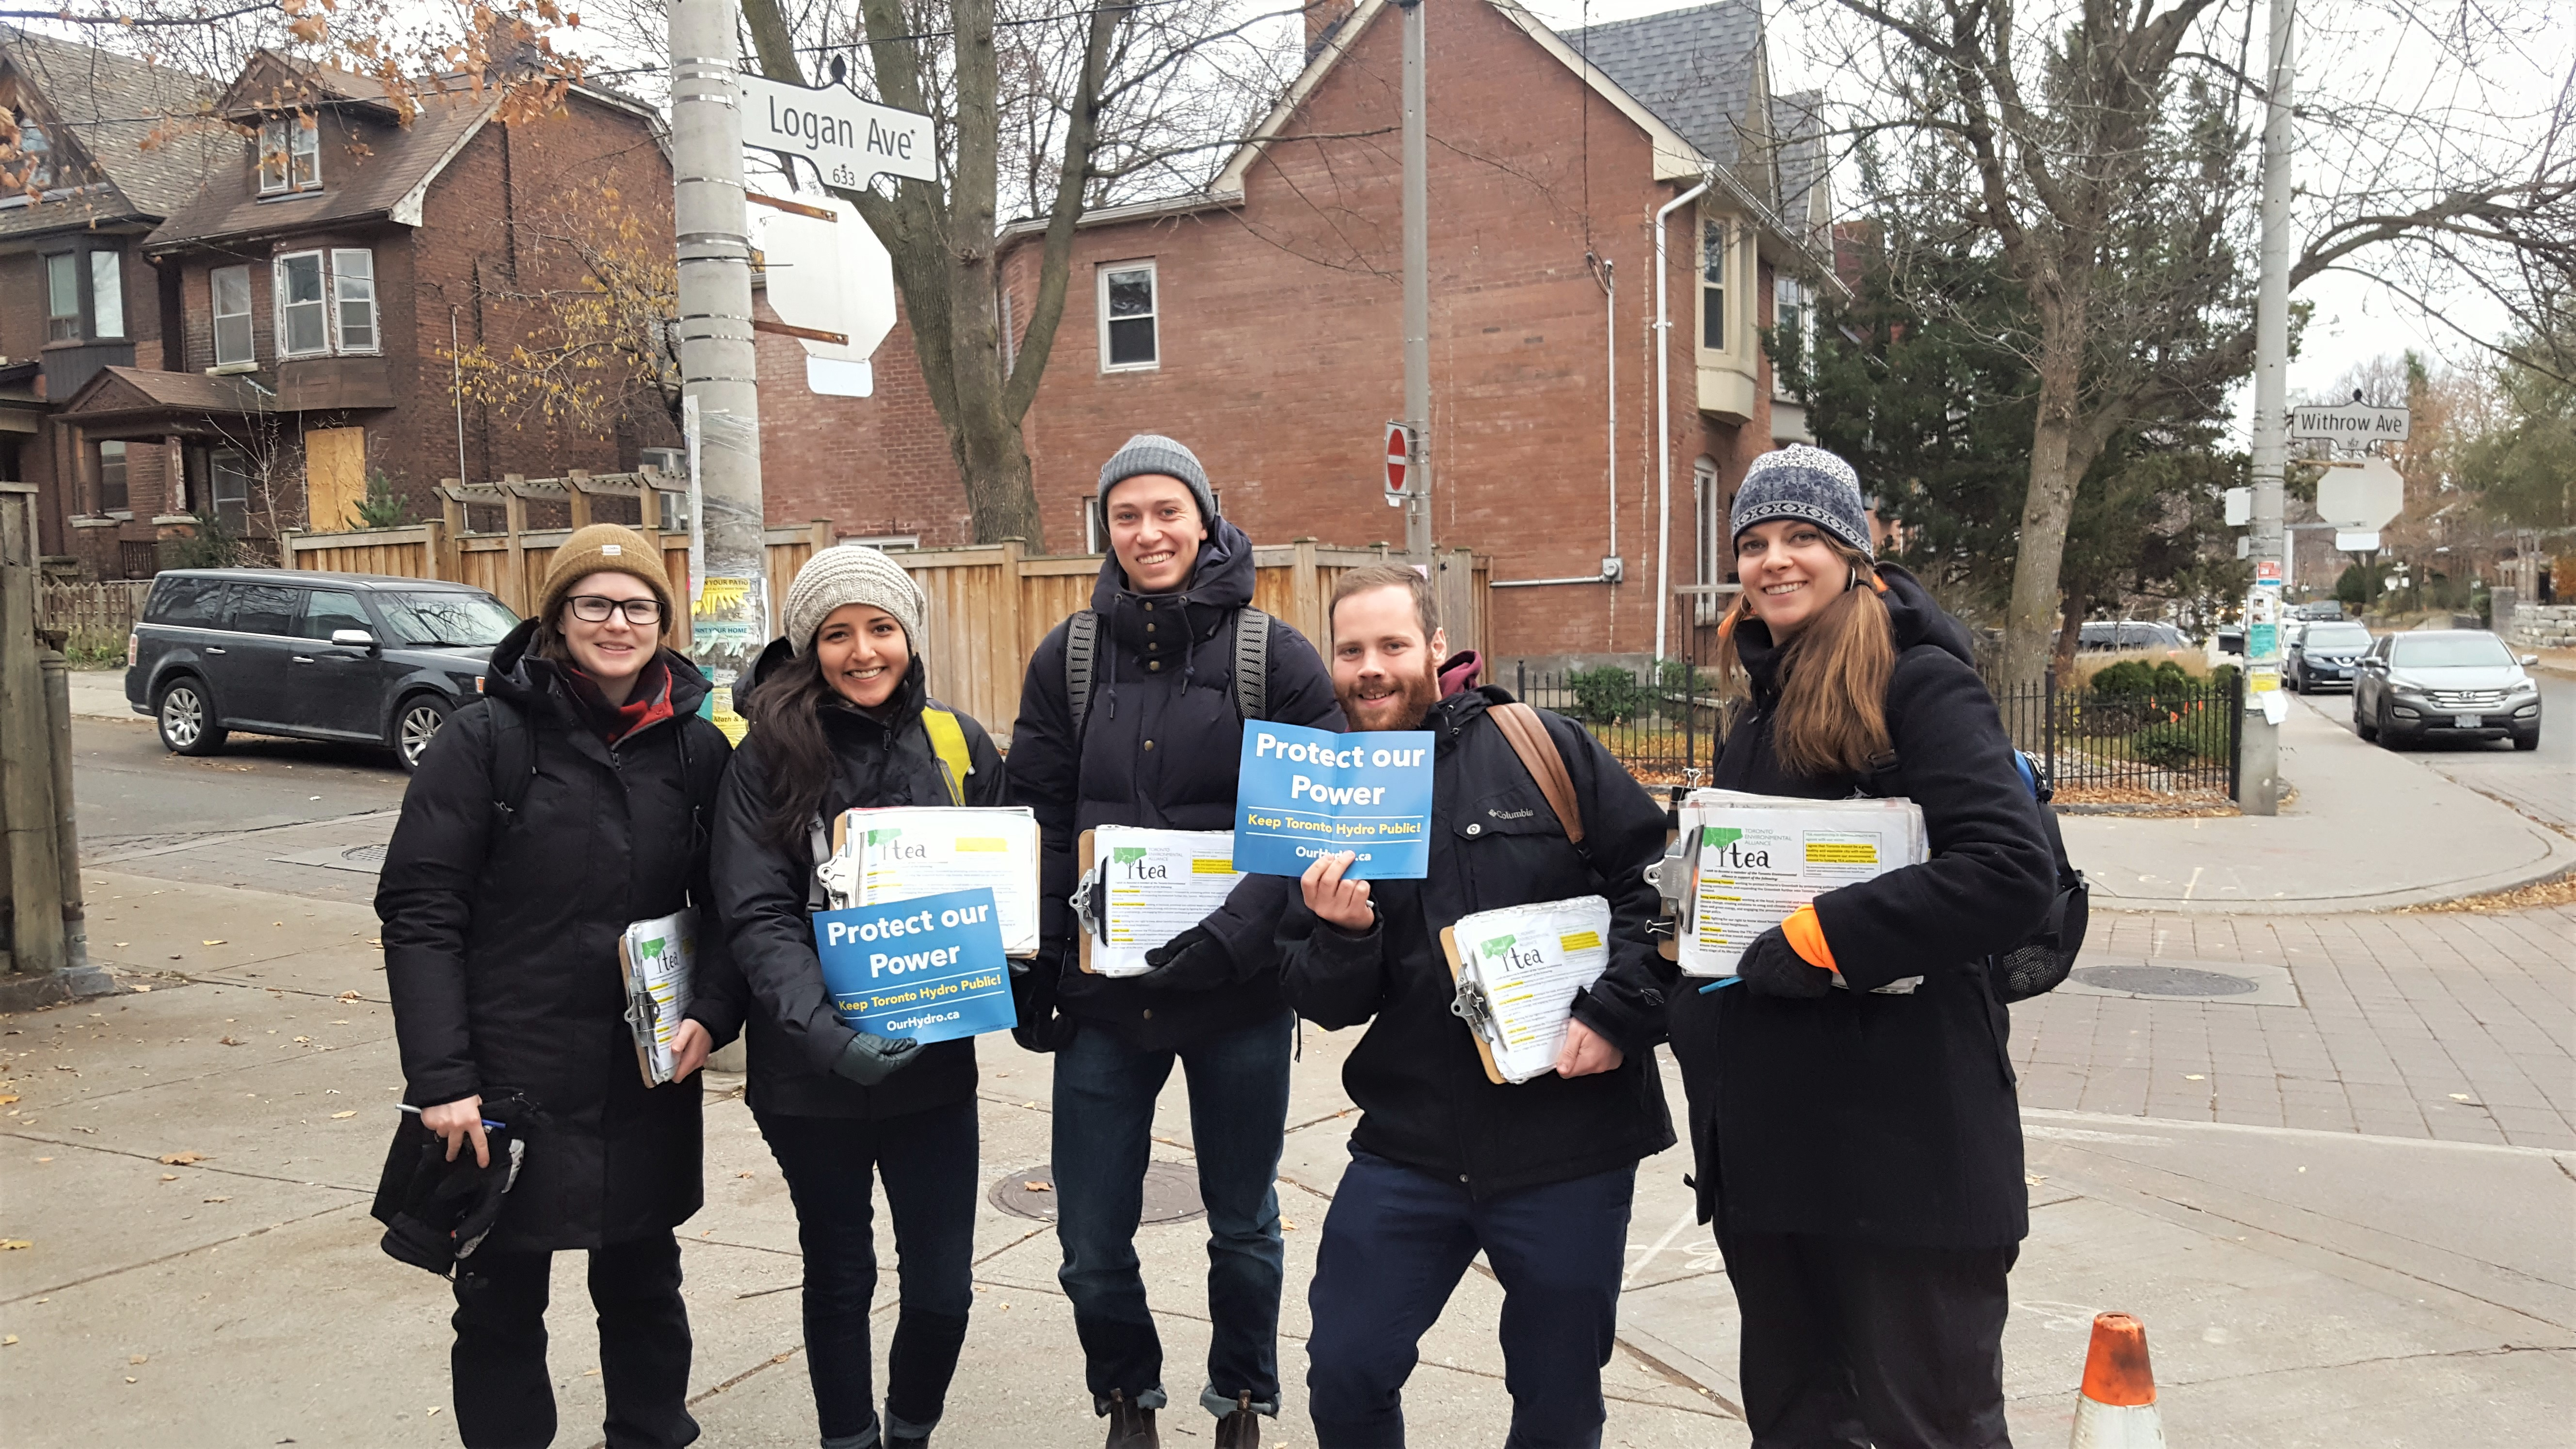 Our canvass team going door to door talking about keeping Toronto Hyrdo public